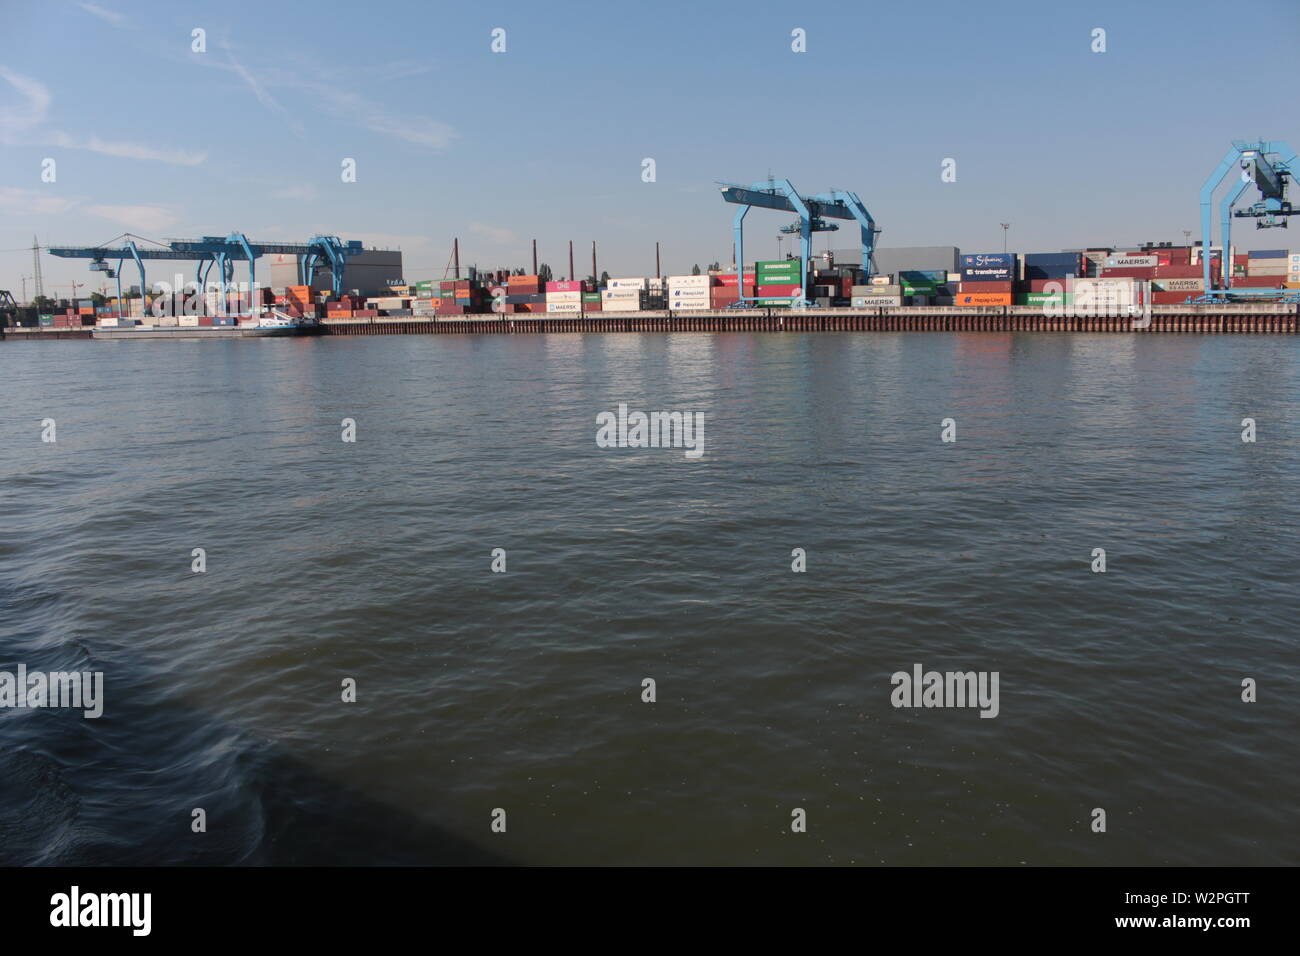 Cargo port on the Rhine river in Mainz - Stock Image